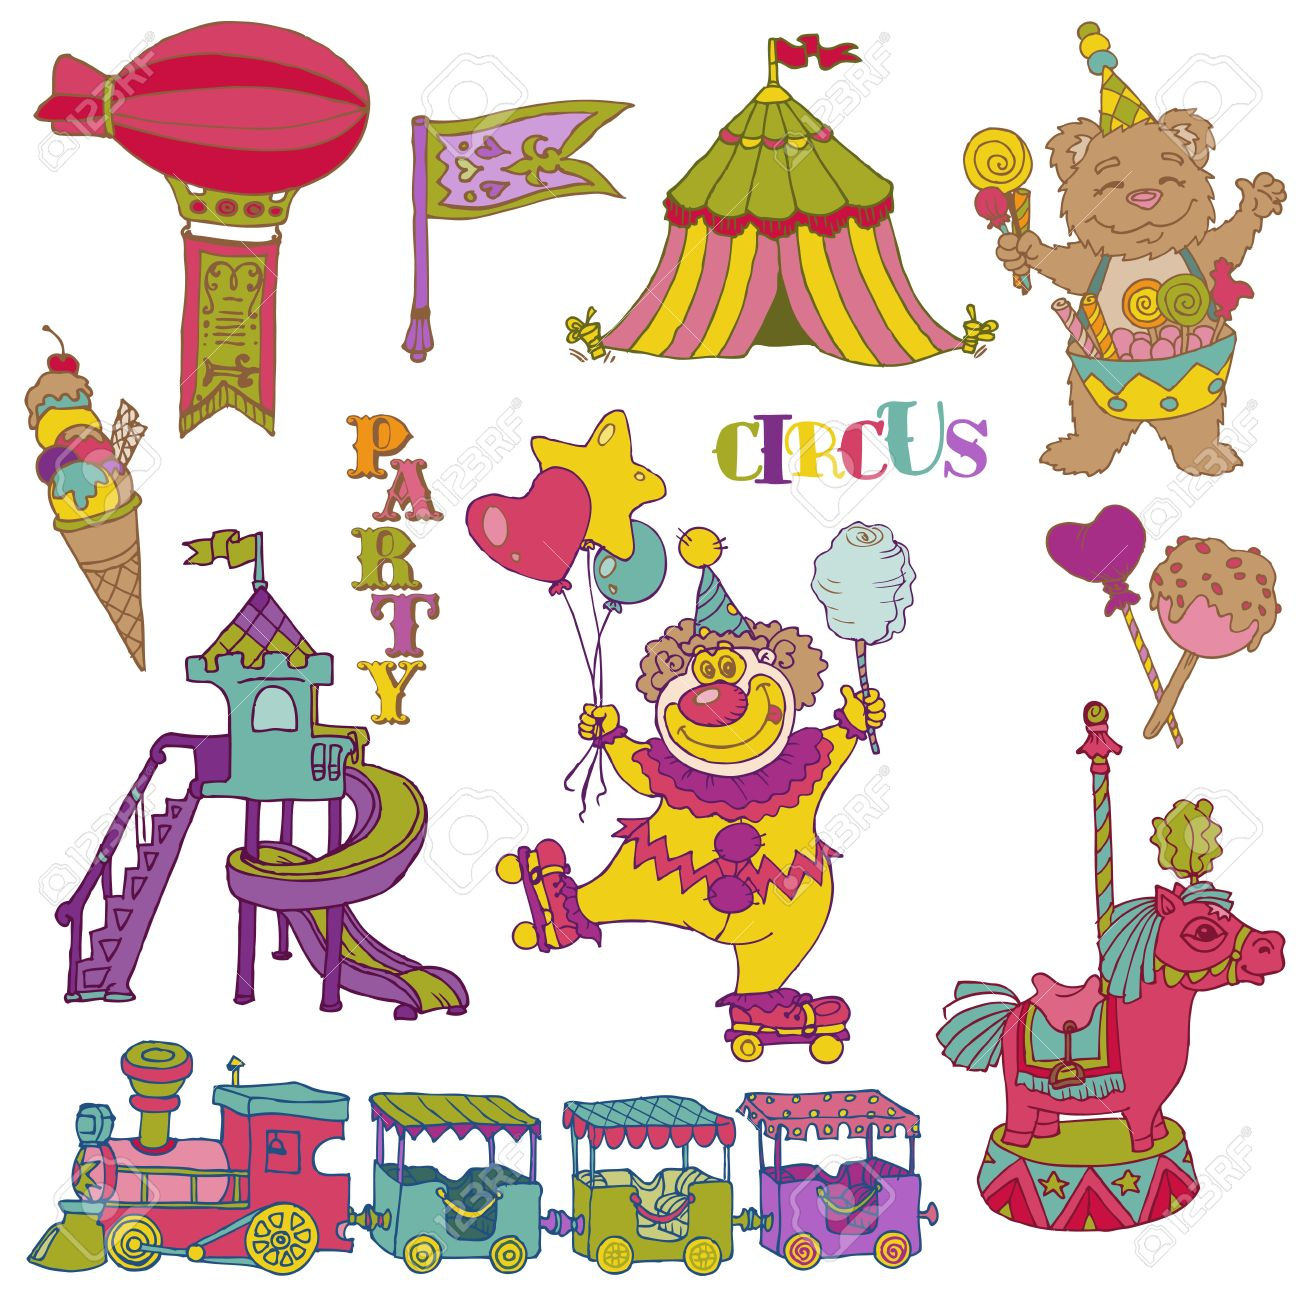 Vintage Circus Elements - hand drawn doodles Stock Vector - 14607335